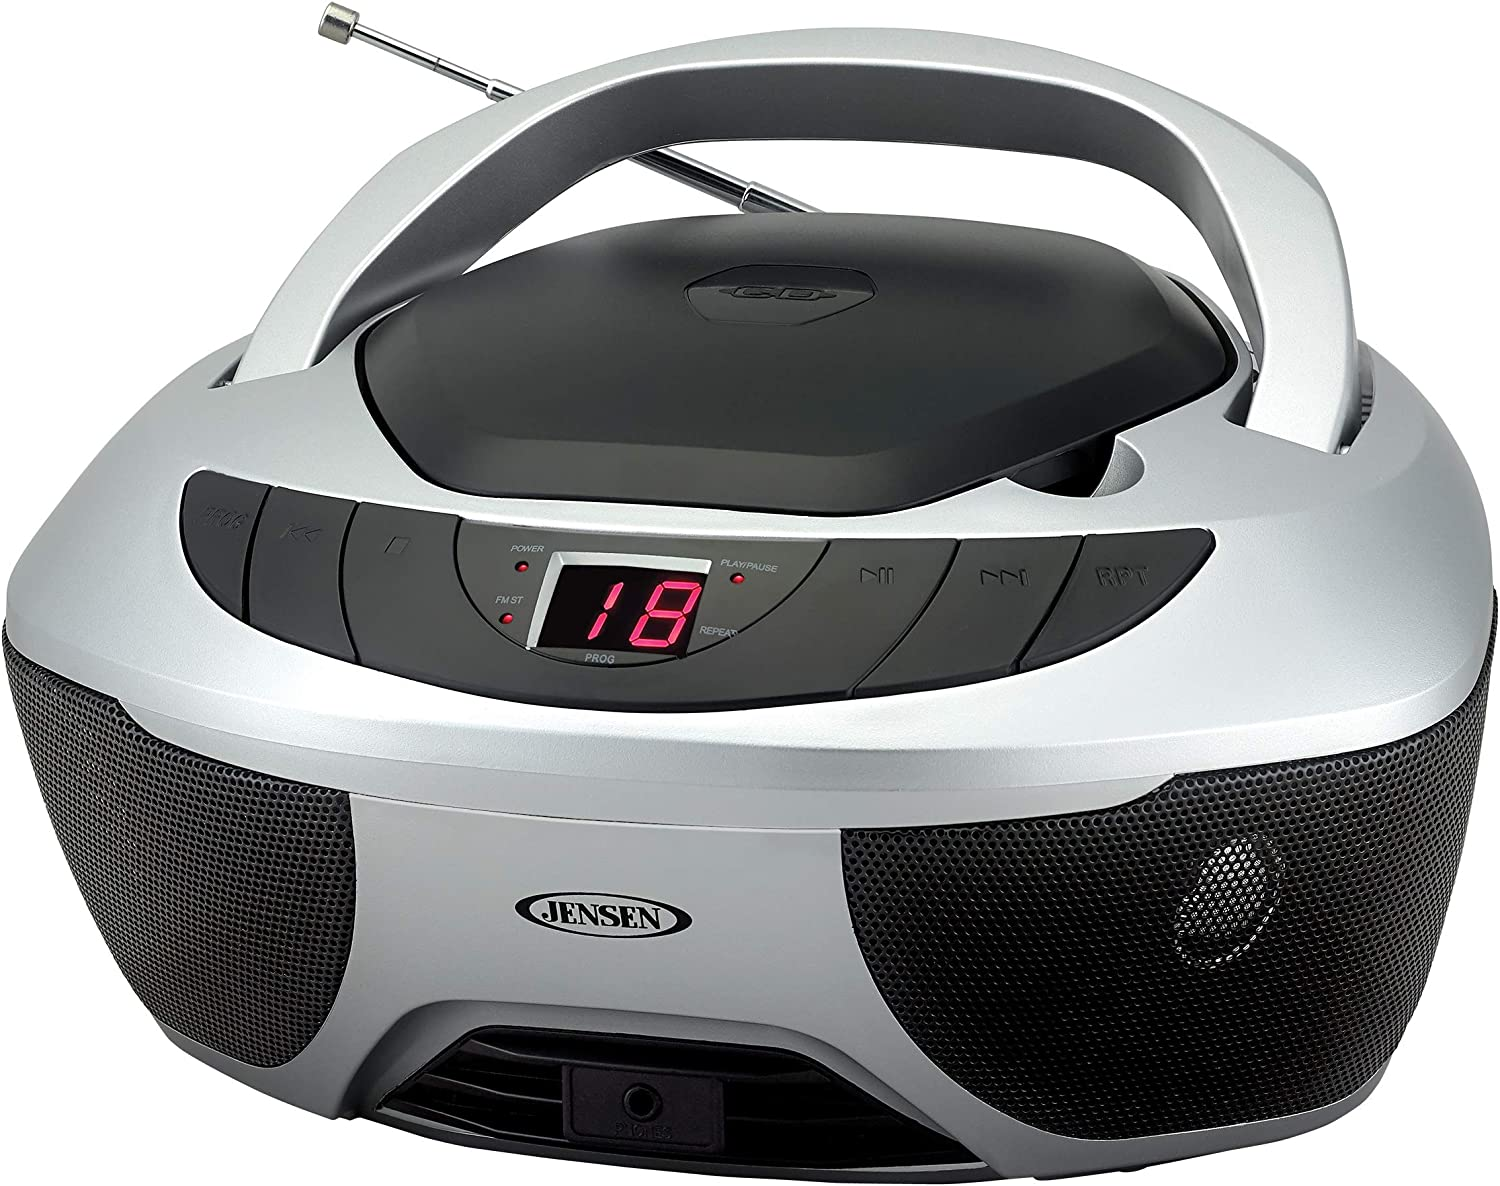 Jensen CD-475S Portable Sport Stereo Boombox CD Player with AM/FM Radio and Aux Line-in & Headphone Jack (Silver)